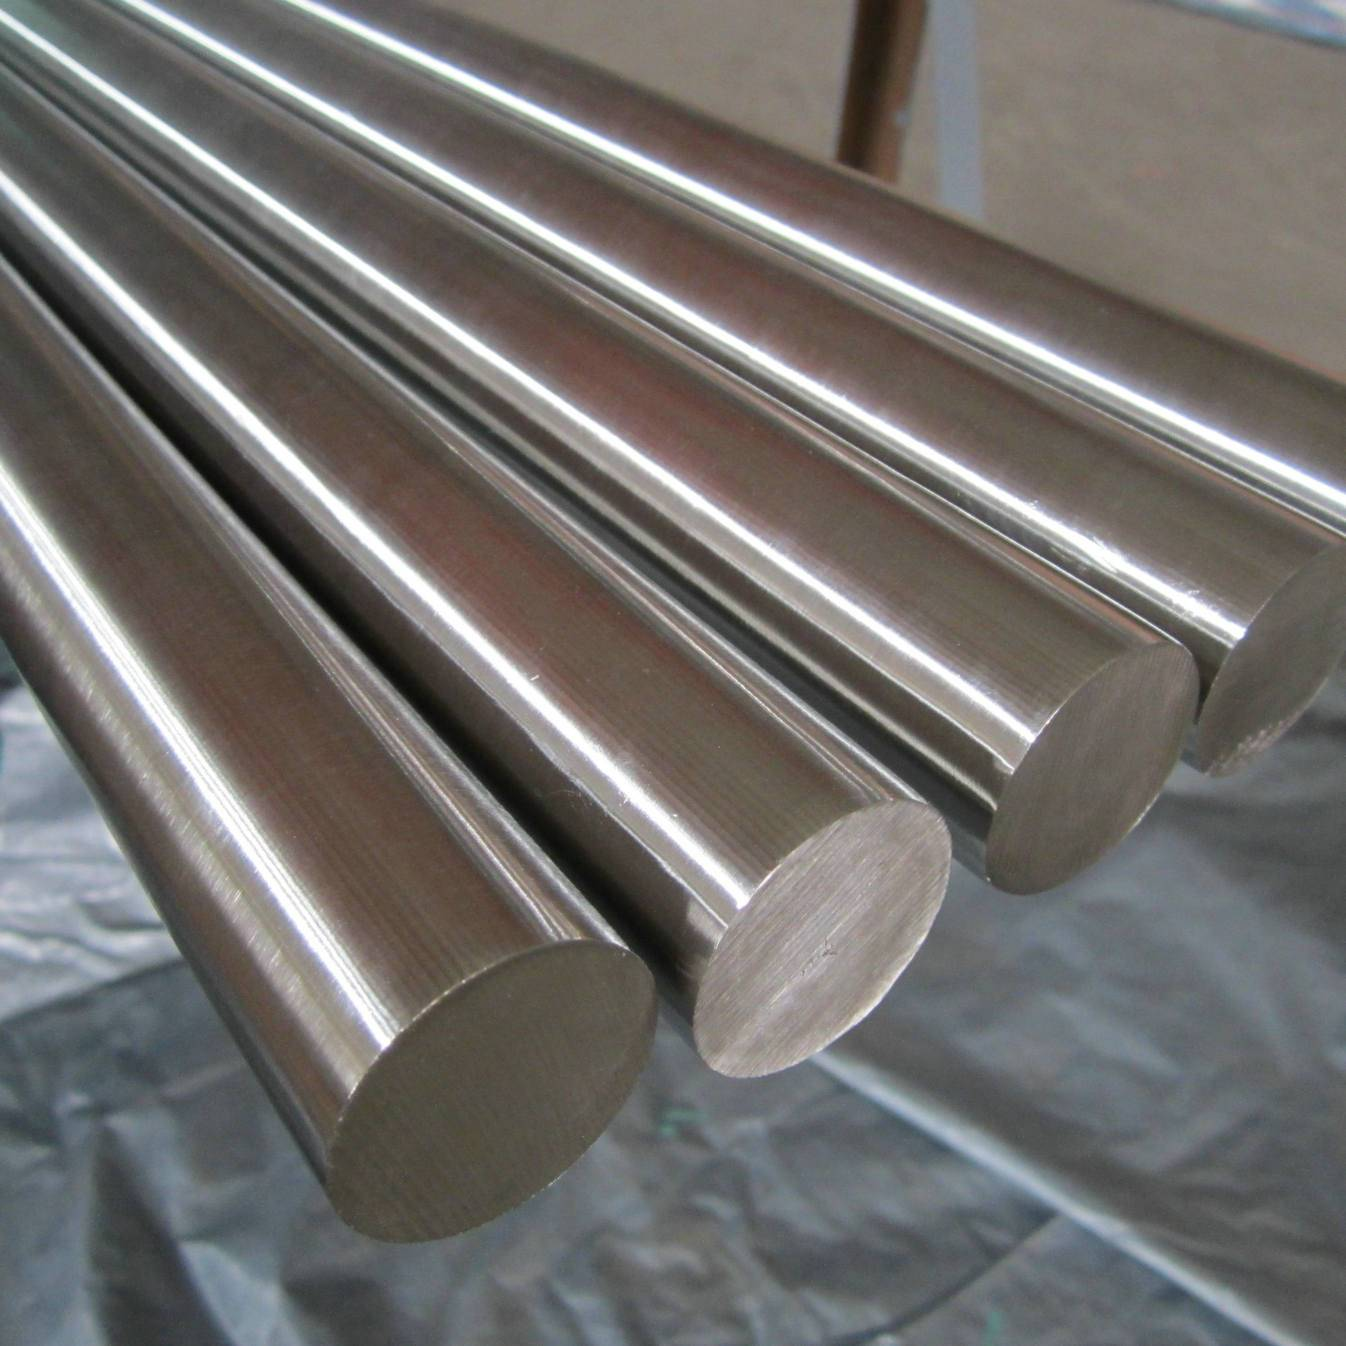 Dia 3-450mm AISI 304 stainless steel round bar / steel rod , H11 tolerance , stainless steel manufac